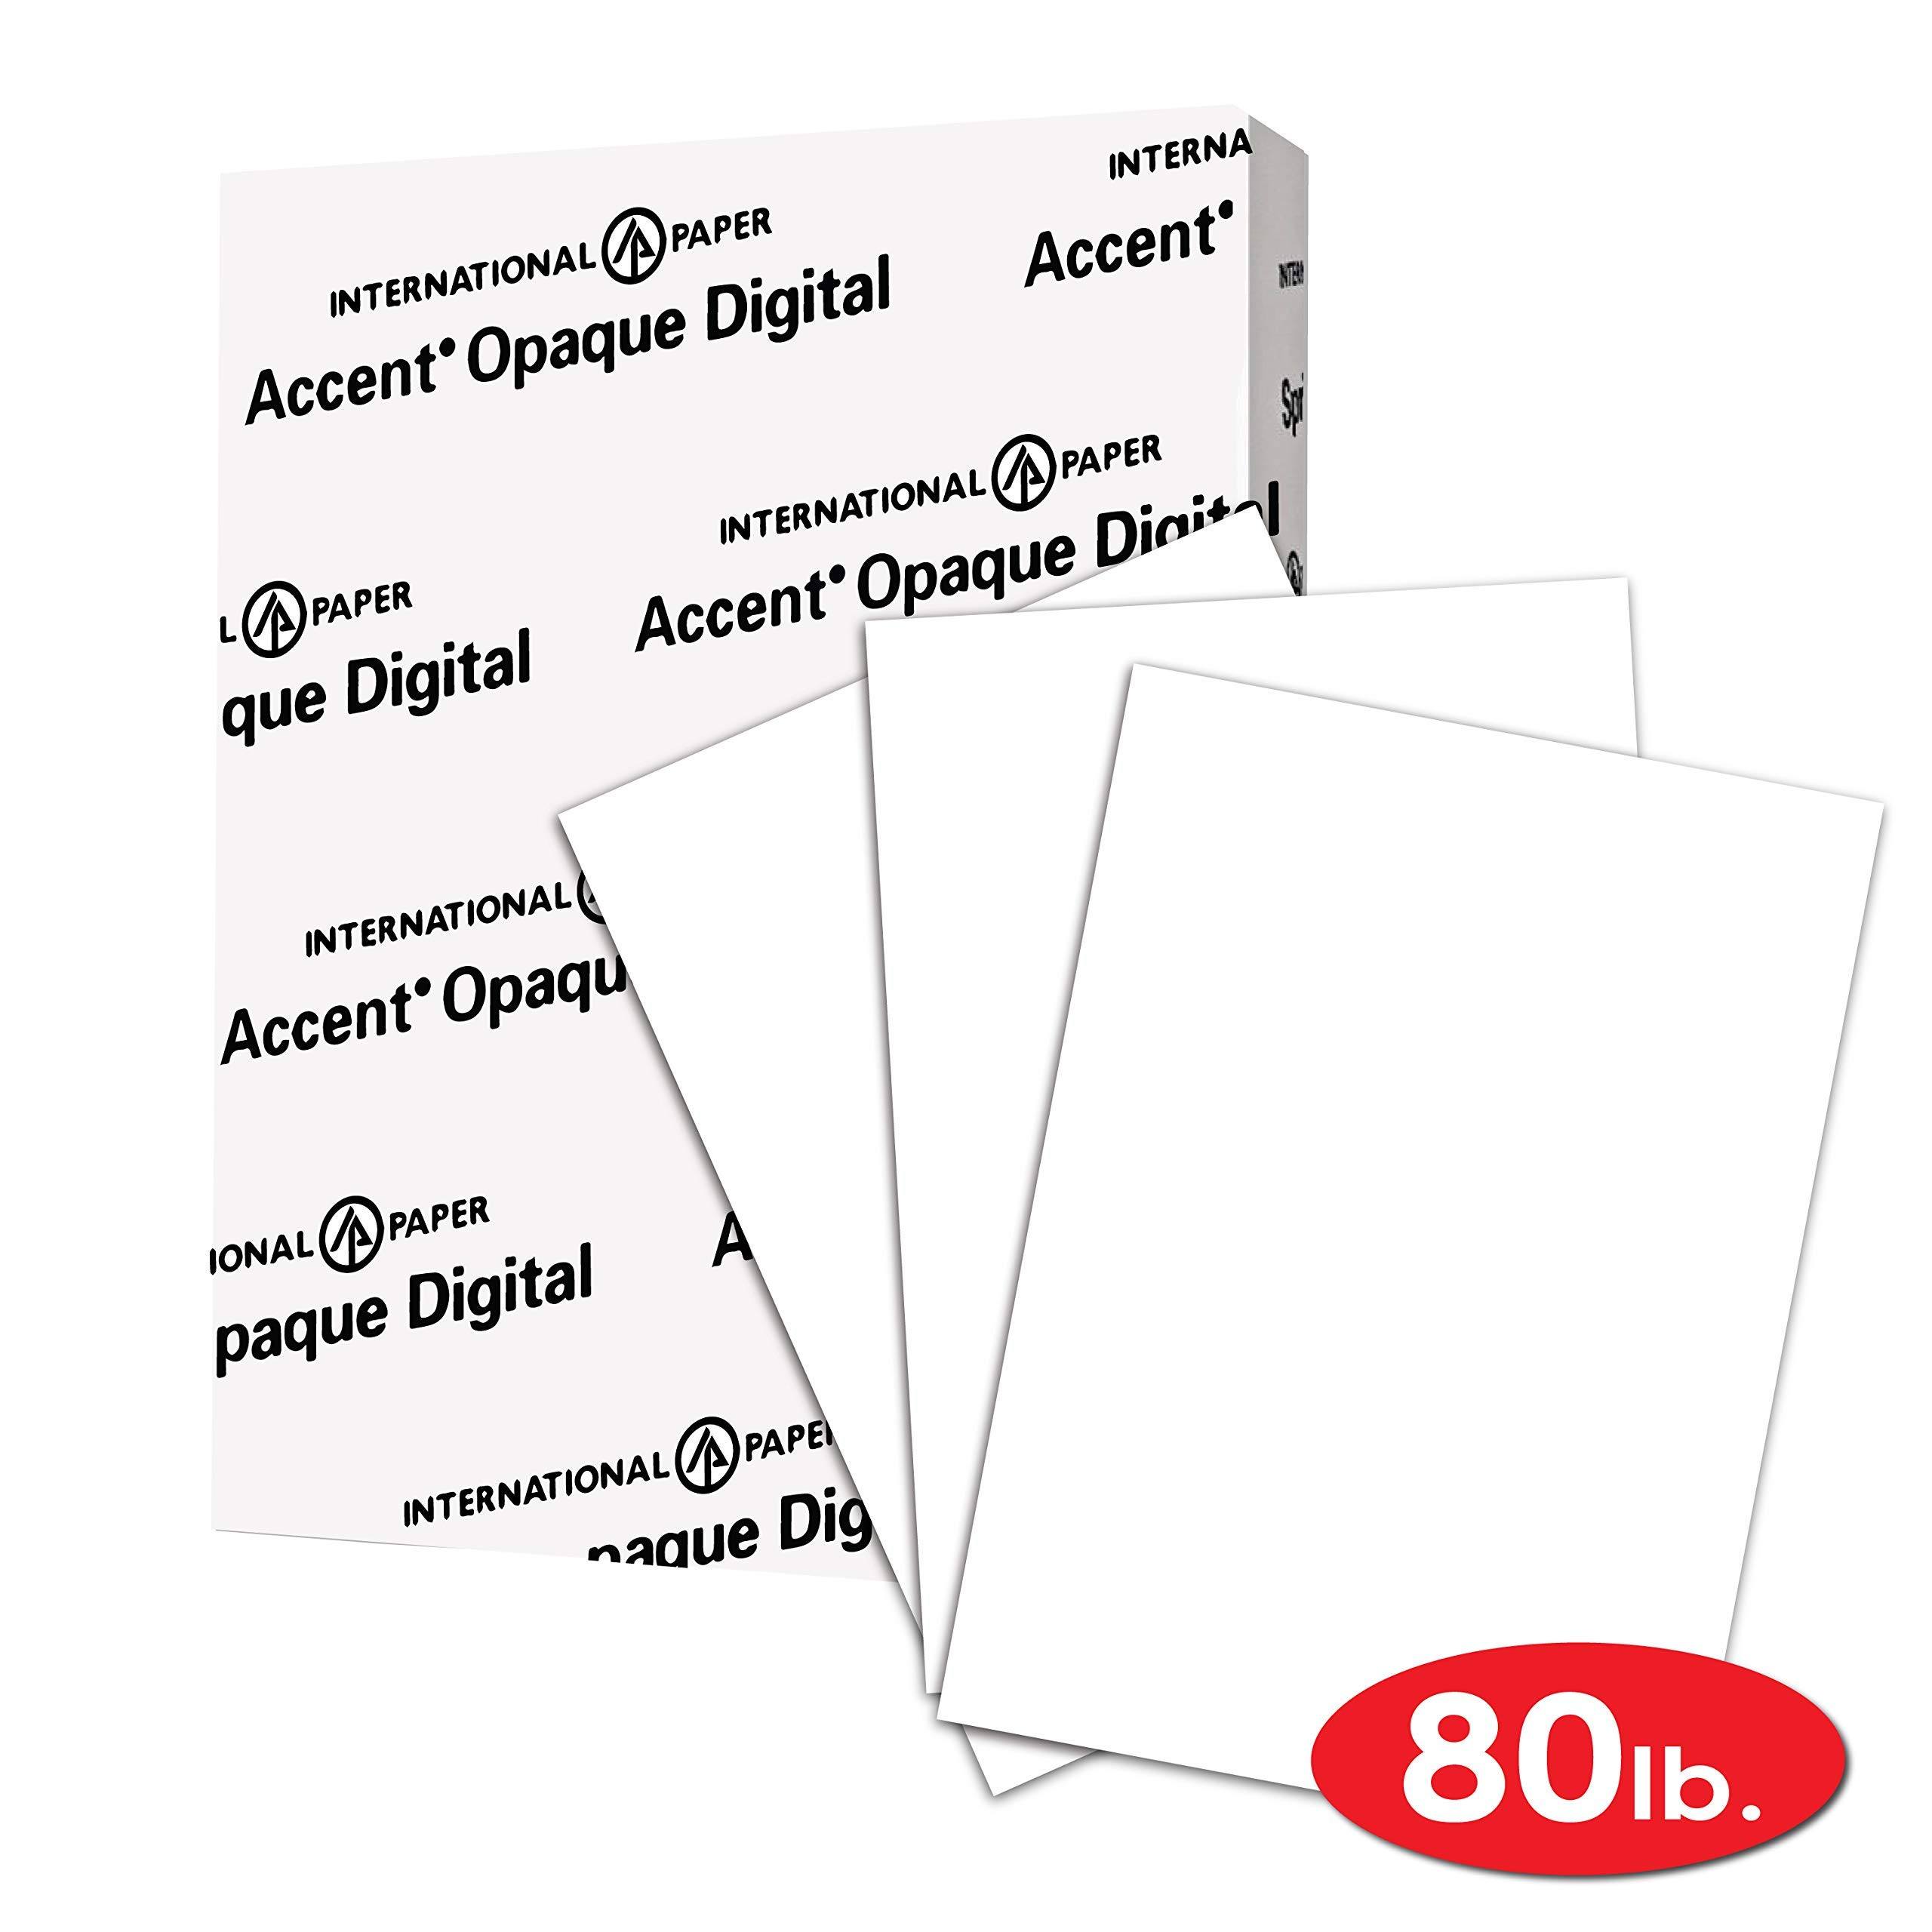 Accent Opaque Thick Cardstock Paper, White Paper, 80lb Cover, 216 gsm, Letetr Size, 8.5 x 11 Paper, 97 Bright, 1 Ream / 250 Sheets, Super Smooth, Heavy Card Stock (121947R) (Renewed)